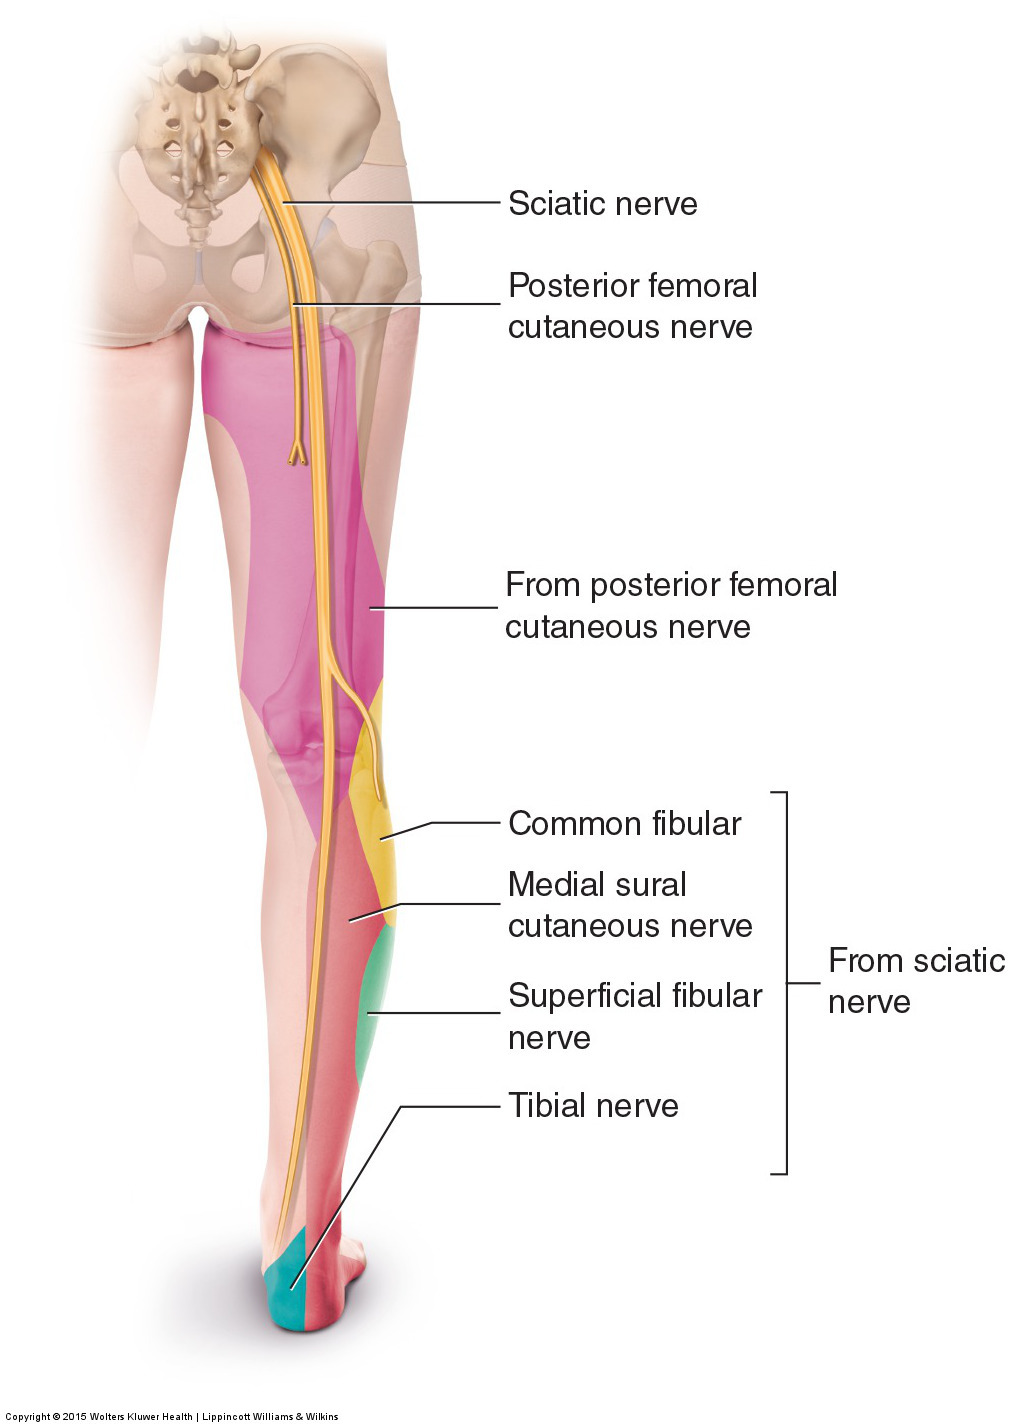 Sciatic nerve sensory innervation in the lower extremity. Manual Therapy for the Low Back and Pelvis (2015).